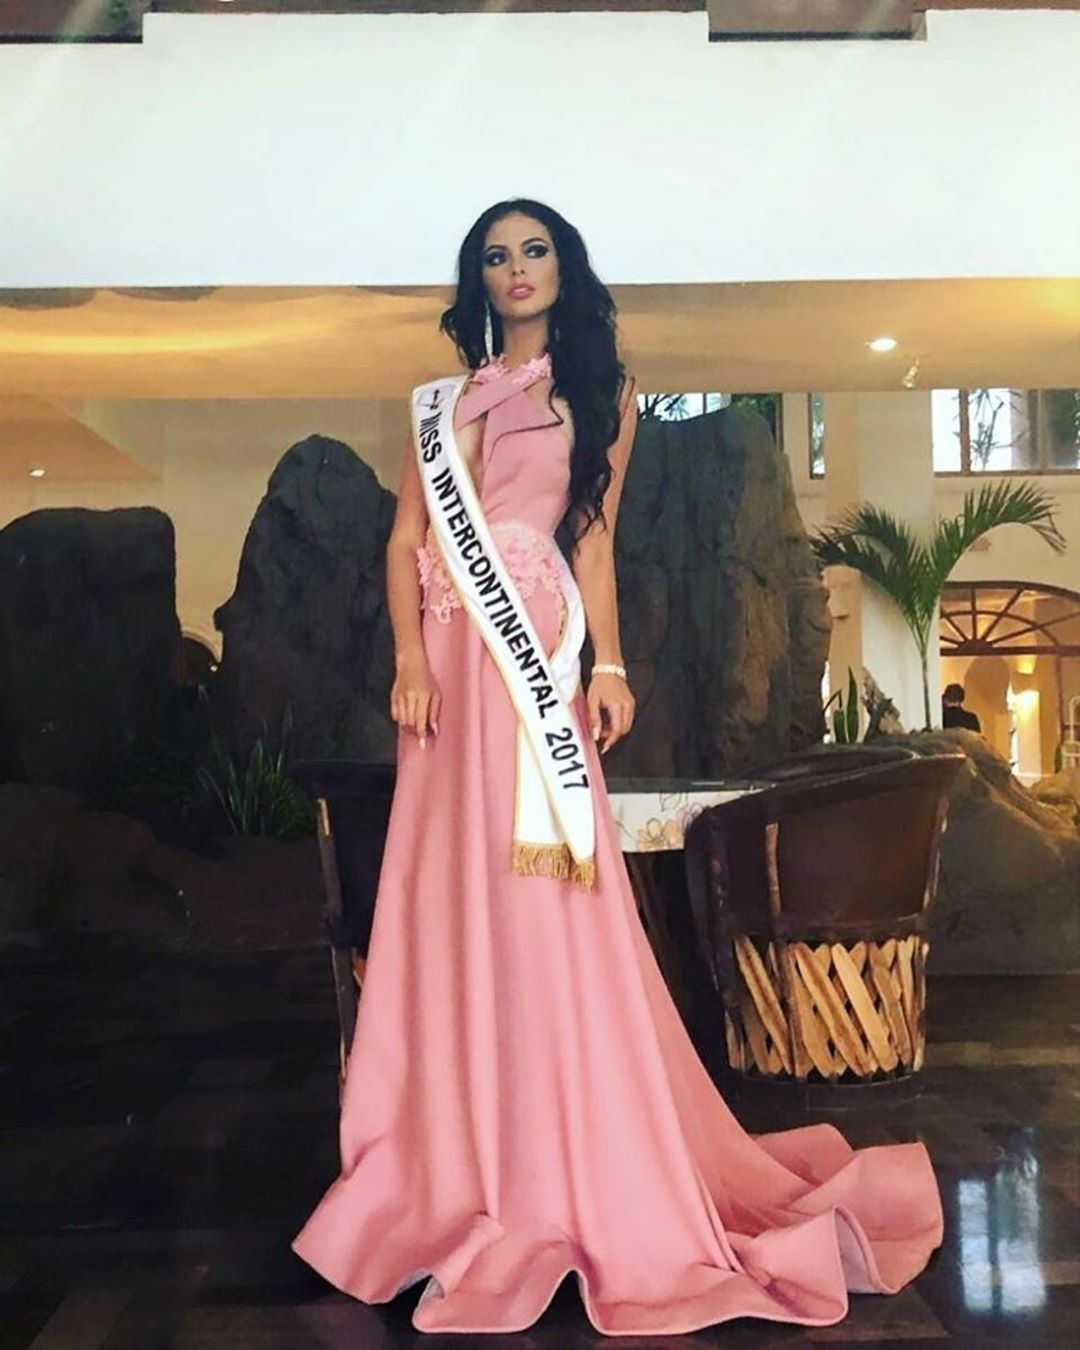 veronica salas, miss intercontinental 2017/top 20 de miss eco international 2017. - Página 18 33738010